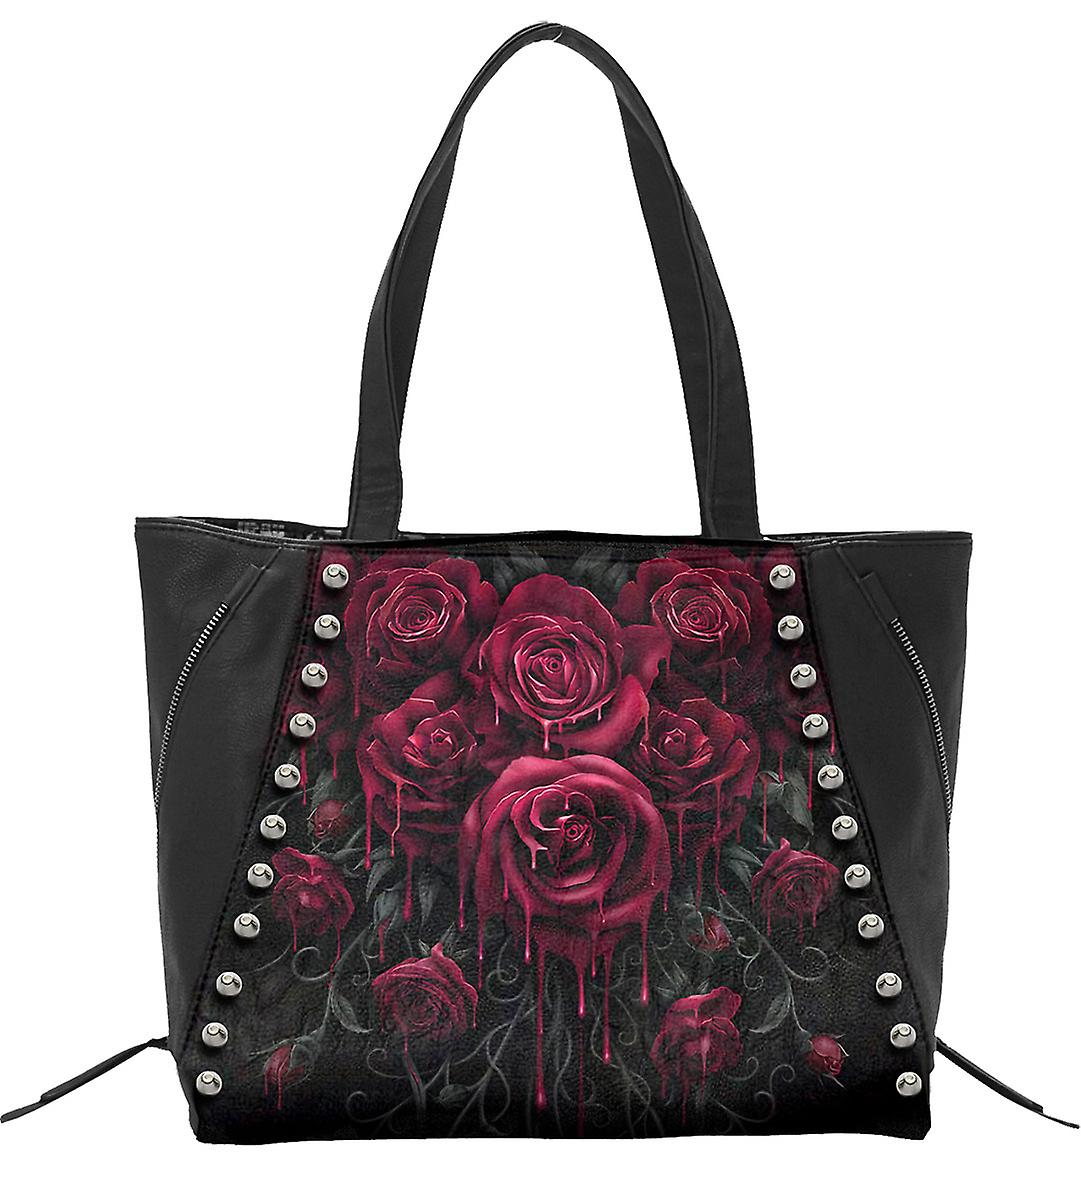 Spiral Direct Gothic BLOOD ROSE - Tote Bag - Top quality PU Leather Studded|Roses|Blood|Gothic